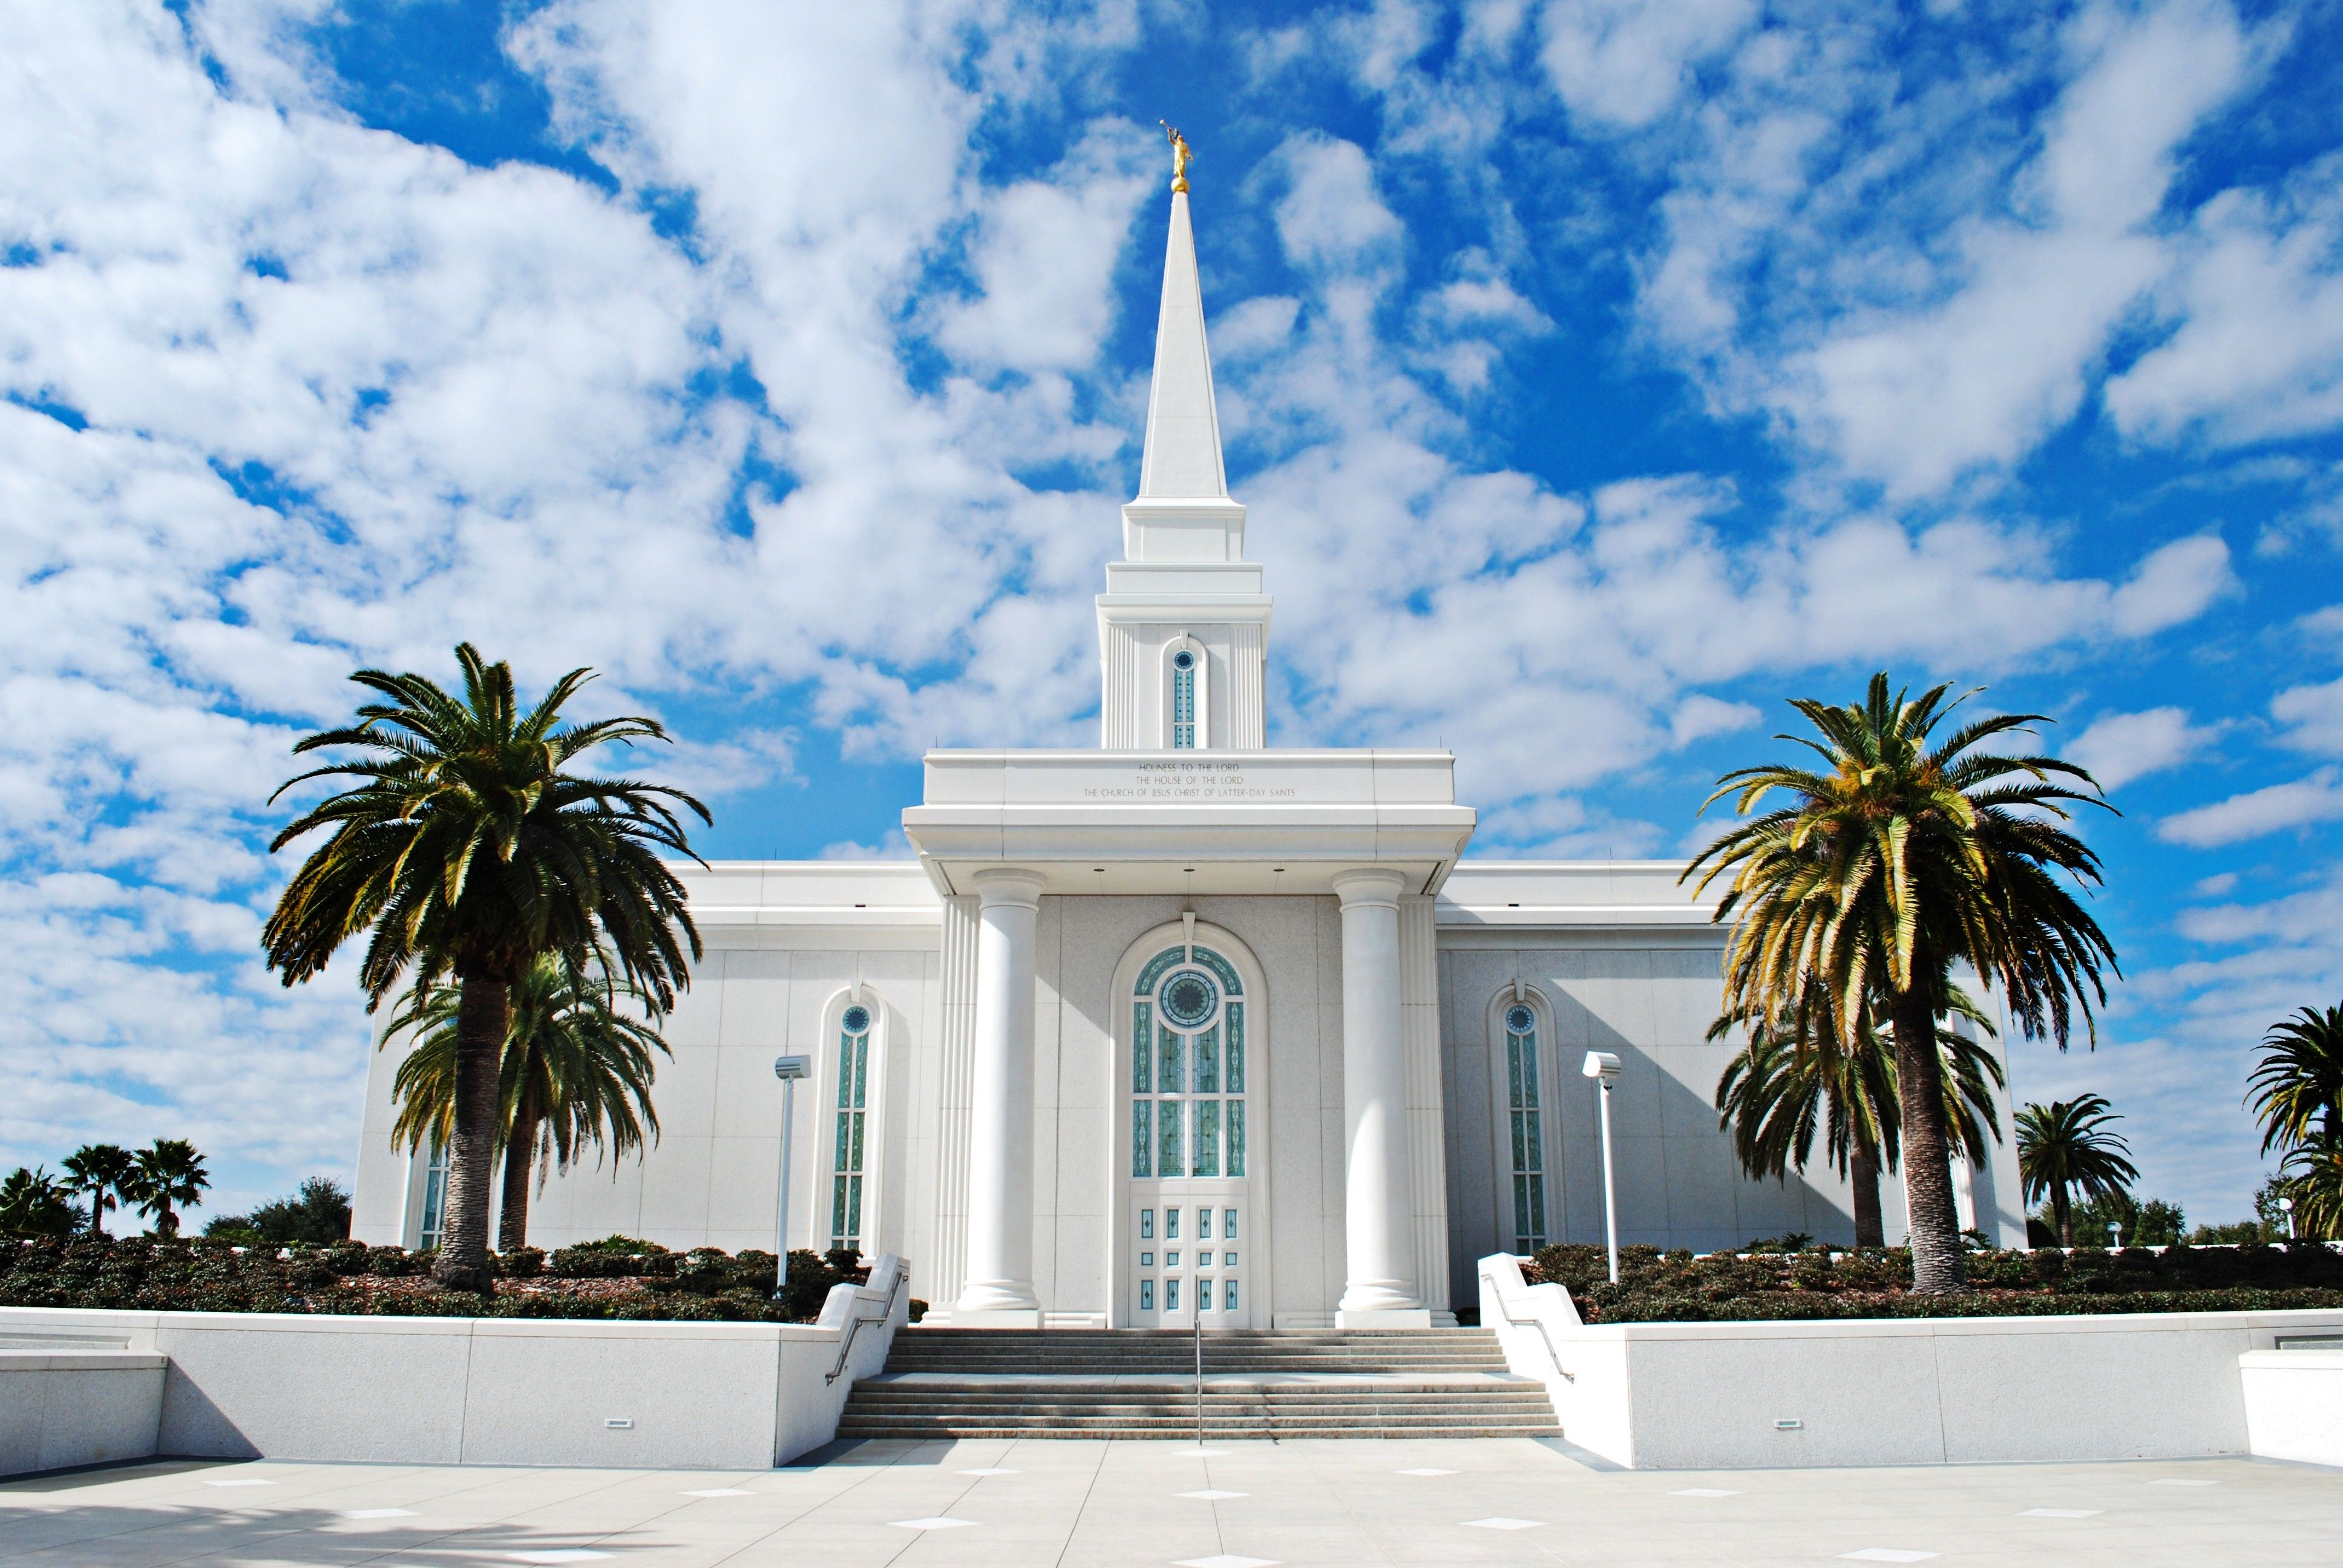 The entire Orlando Florida Temple, including the entrance and scenery.